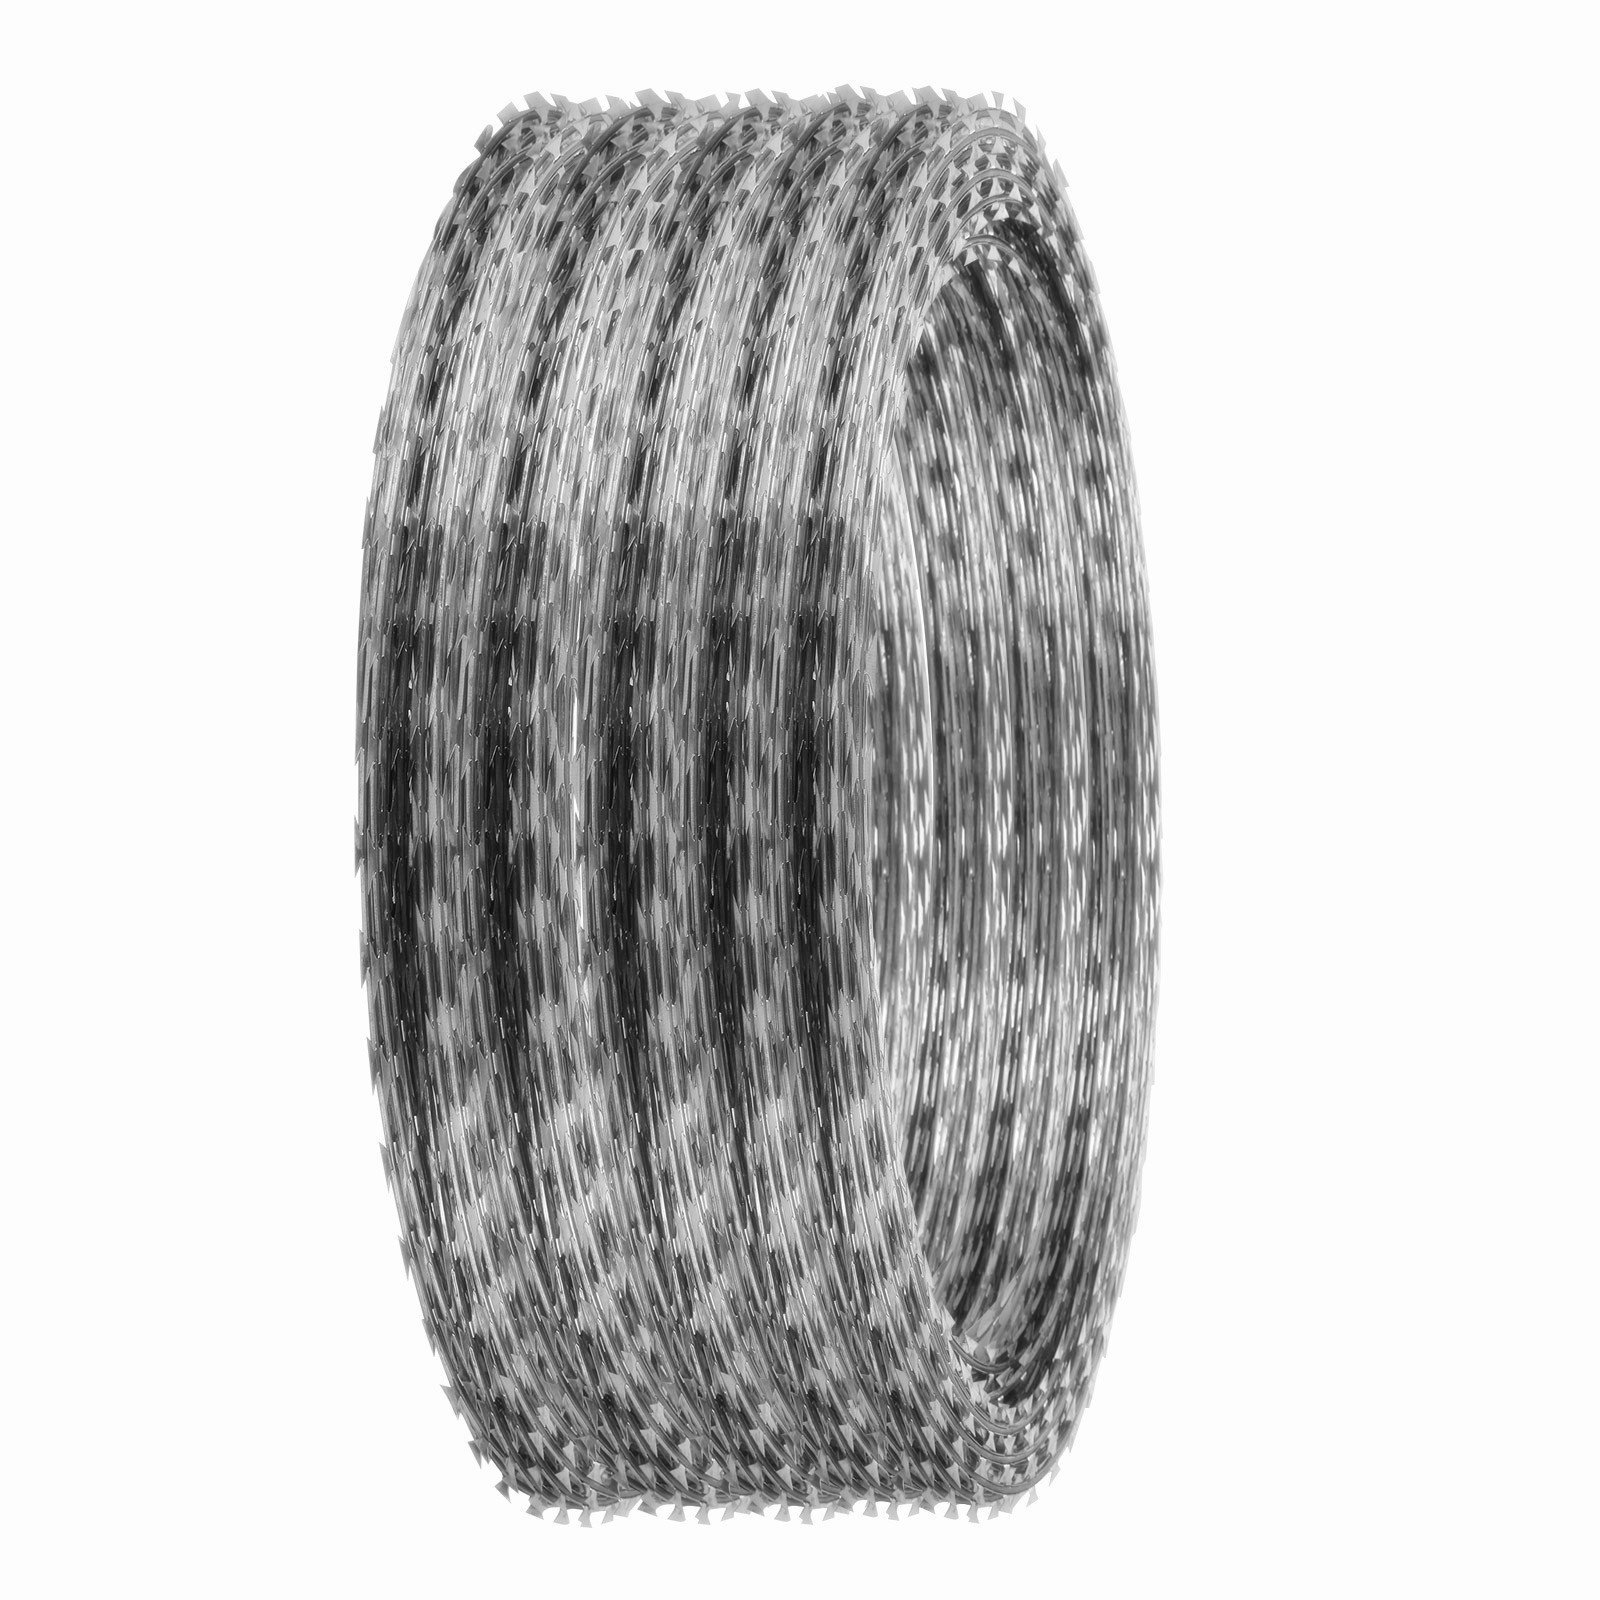 Popsport Razor Barbed Wire 18 Inch Ribbon Barbed Wire 5 Rolls 250 Feet Galvanized Barbed Wire Razor Wire Ribbon Barbed for Industrial and Home Use (Razor Wire)